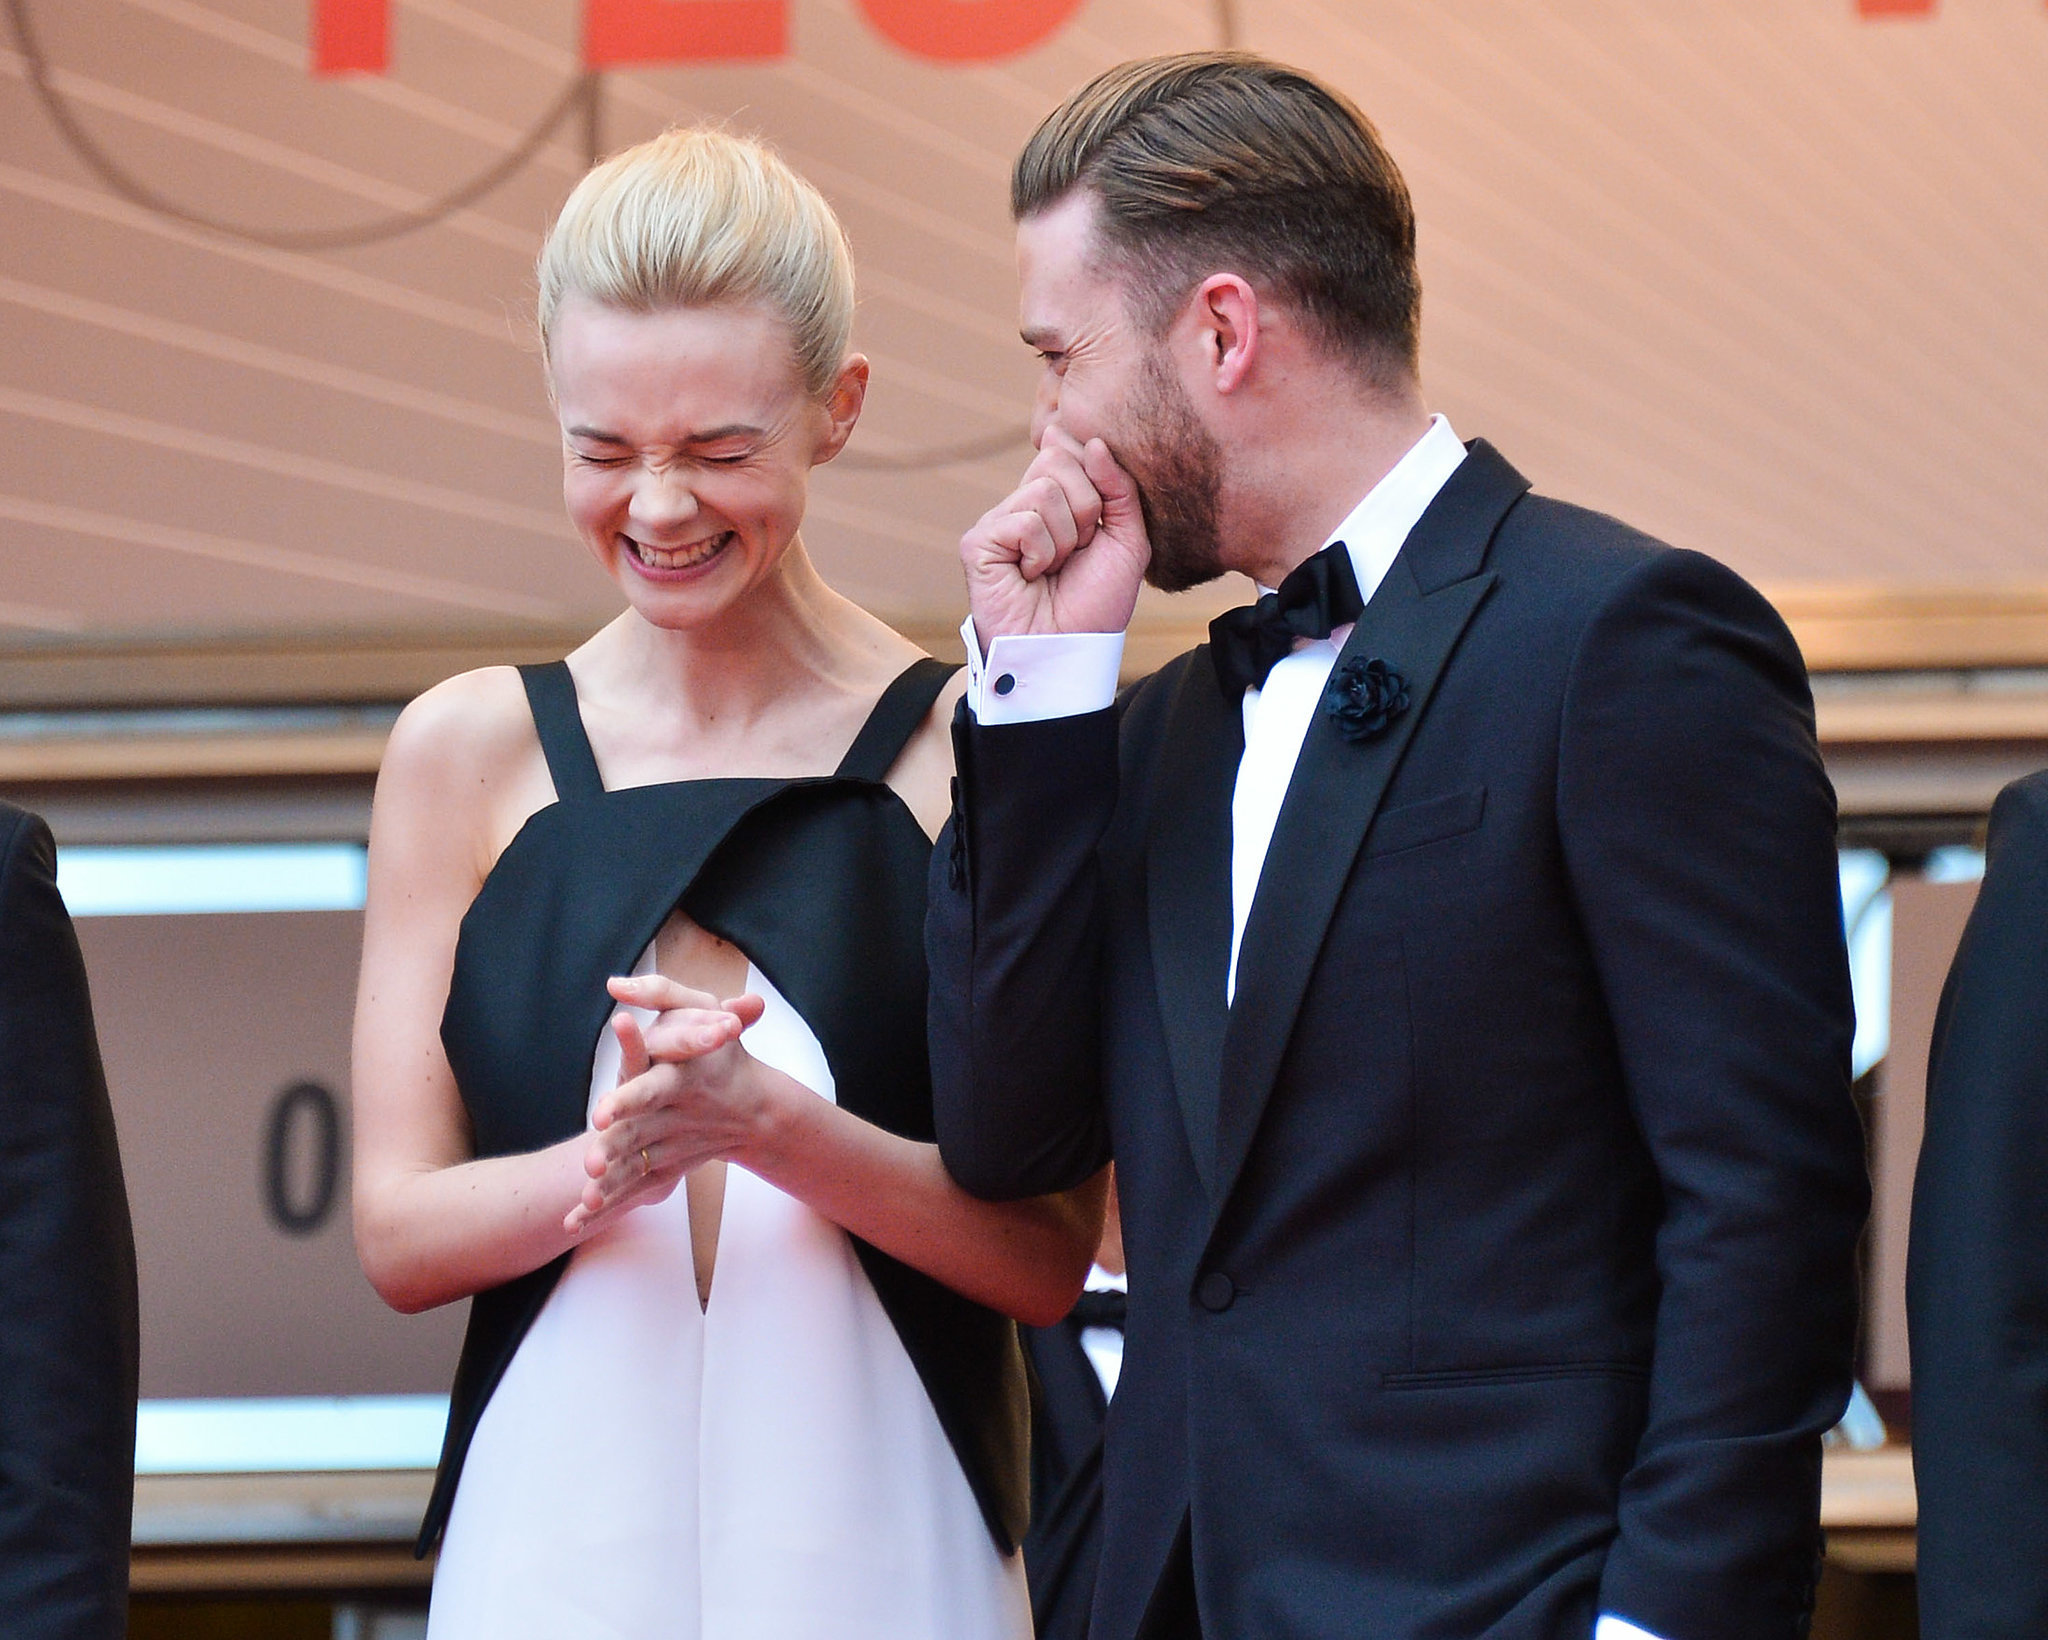 Justin Timberlake cracked Carey Mulligan up at the red carpet premiere of Inside Llewyn Davis in 2013.